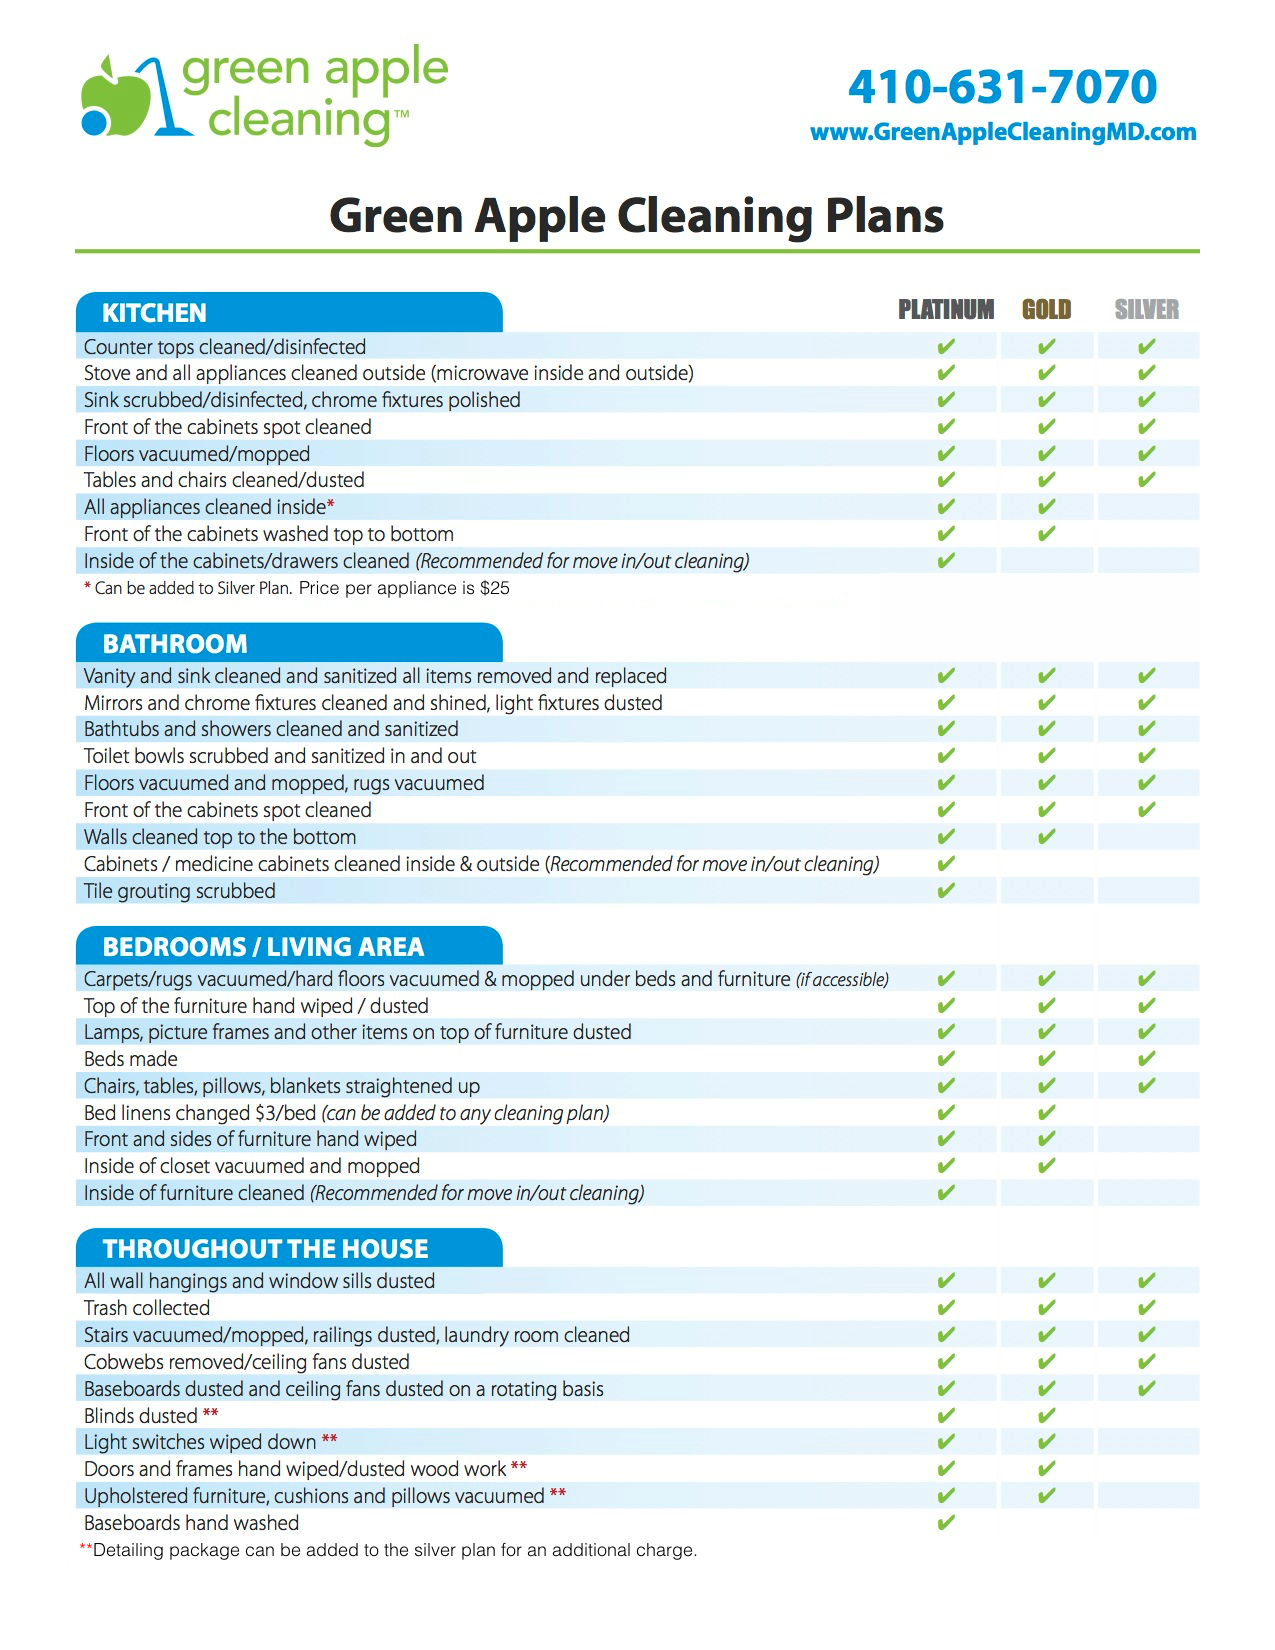 green apple house cleaning services in maryland